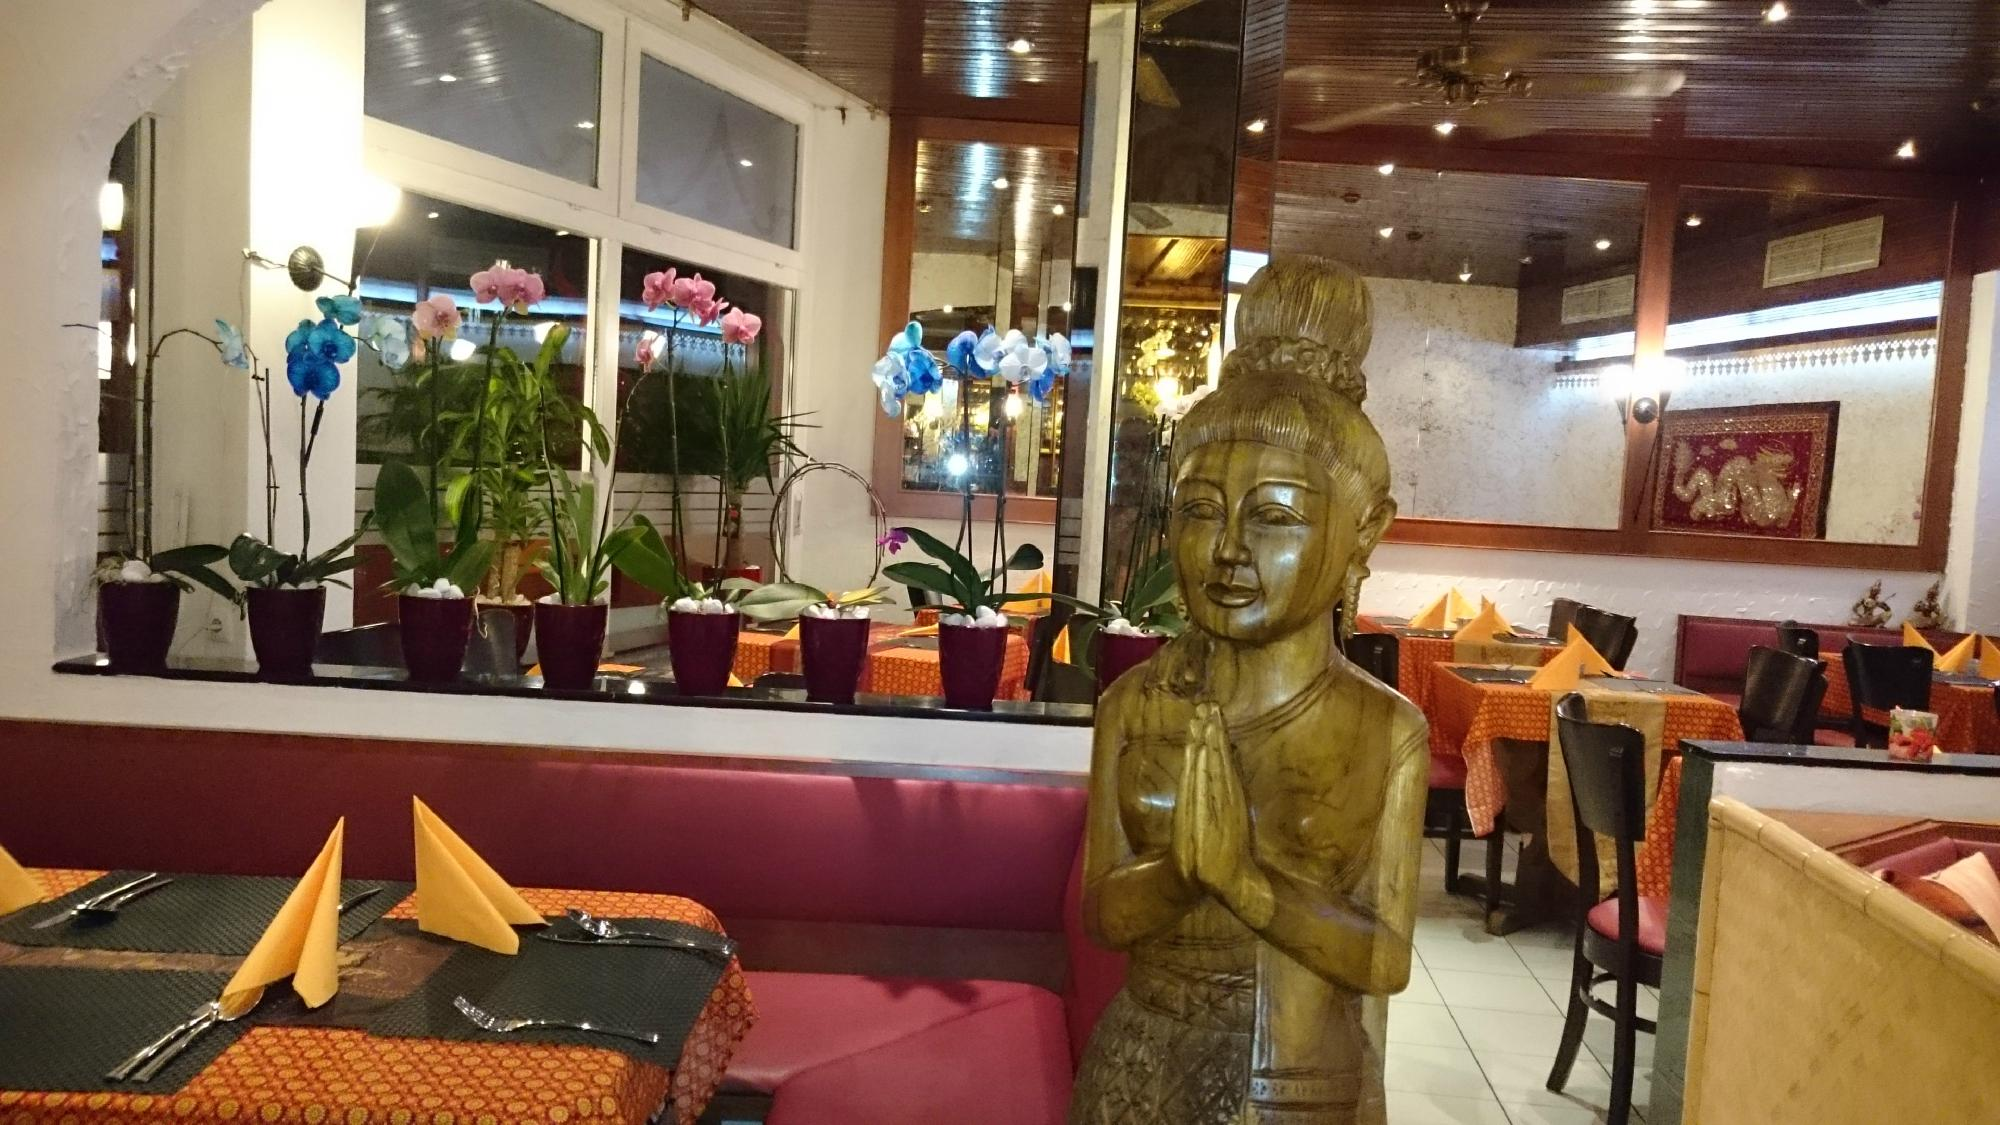 Things To Do in Vietnamese, Restaurants in Vietnamese